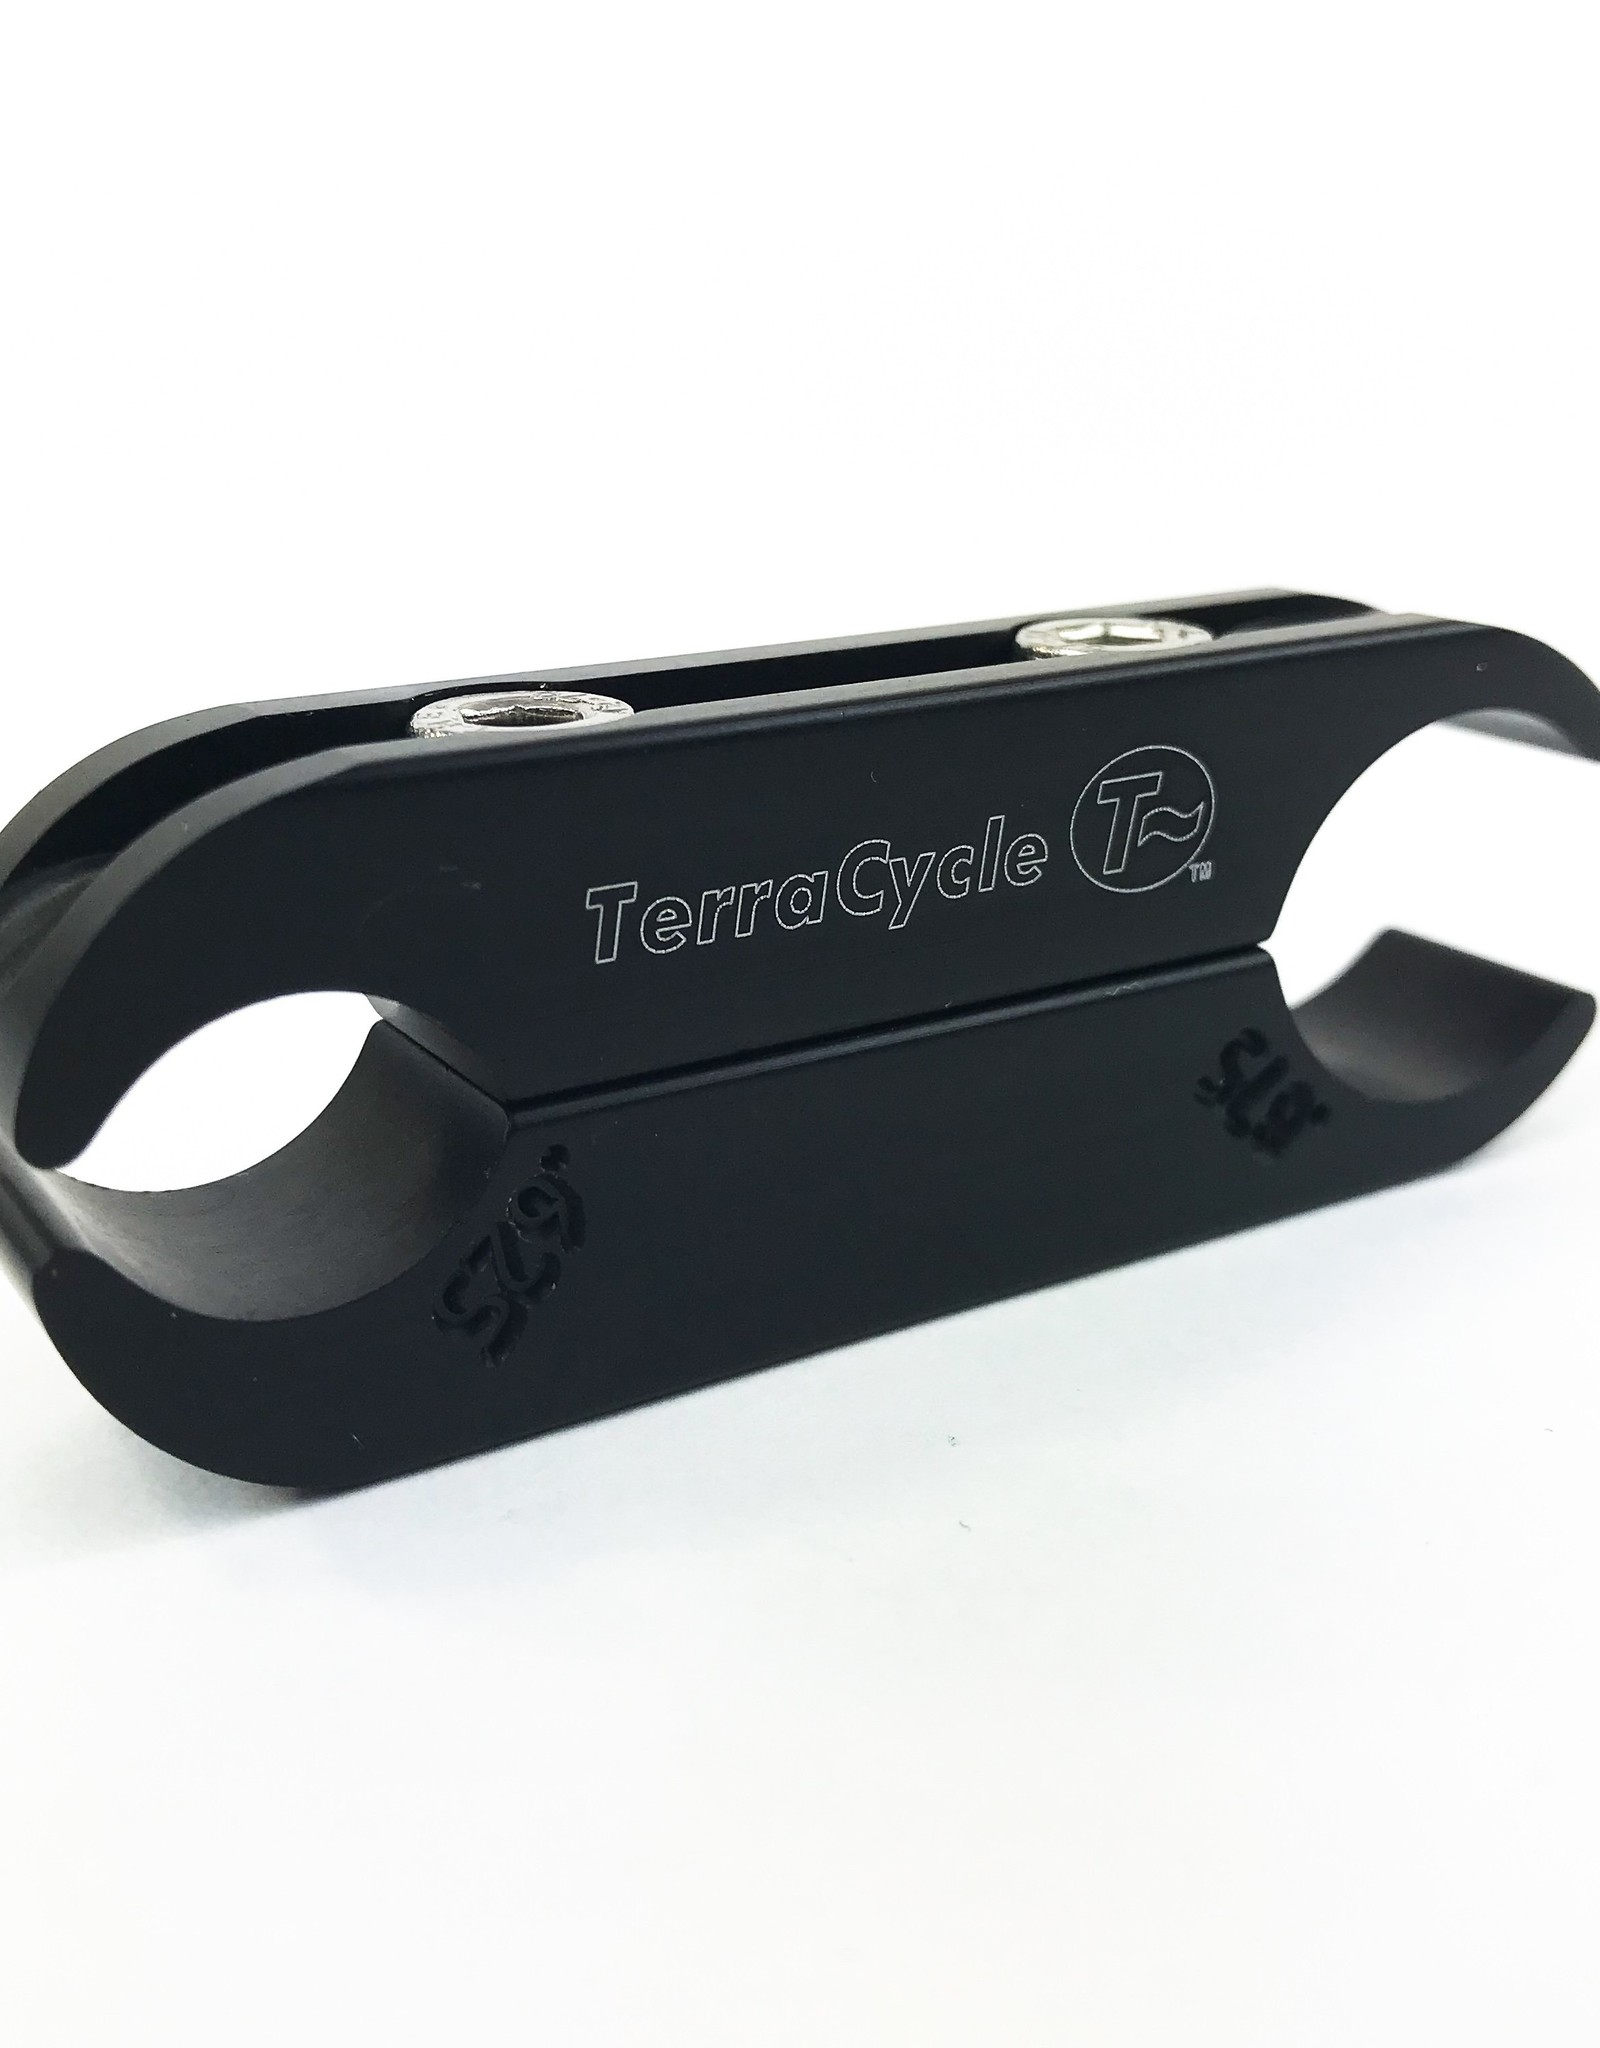 Terracycle 2-Bolt Double Ended Clamp